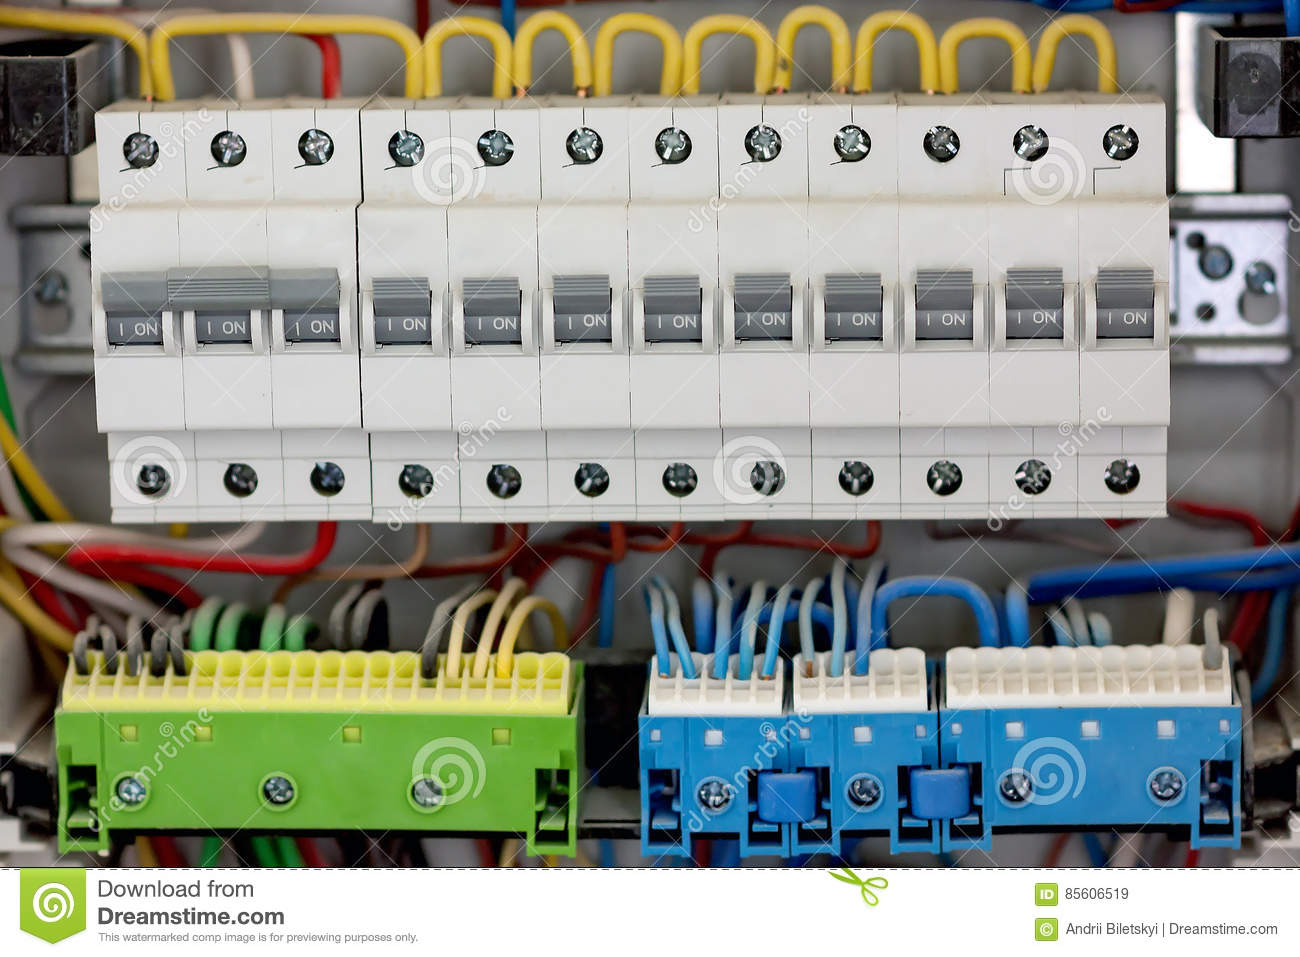 electical distribution fuseboard  electrical supplies  electrical panel at  a assembly line factory  controls and switches